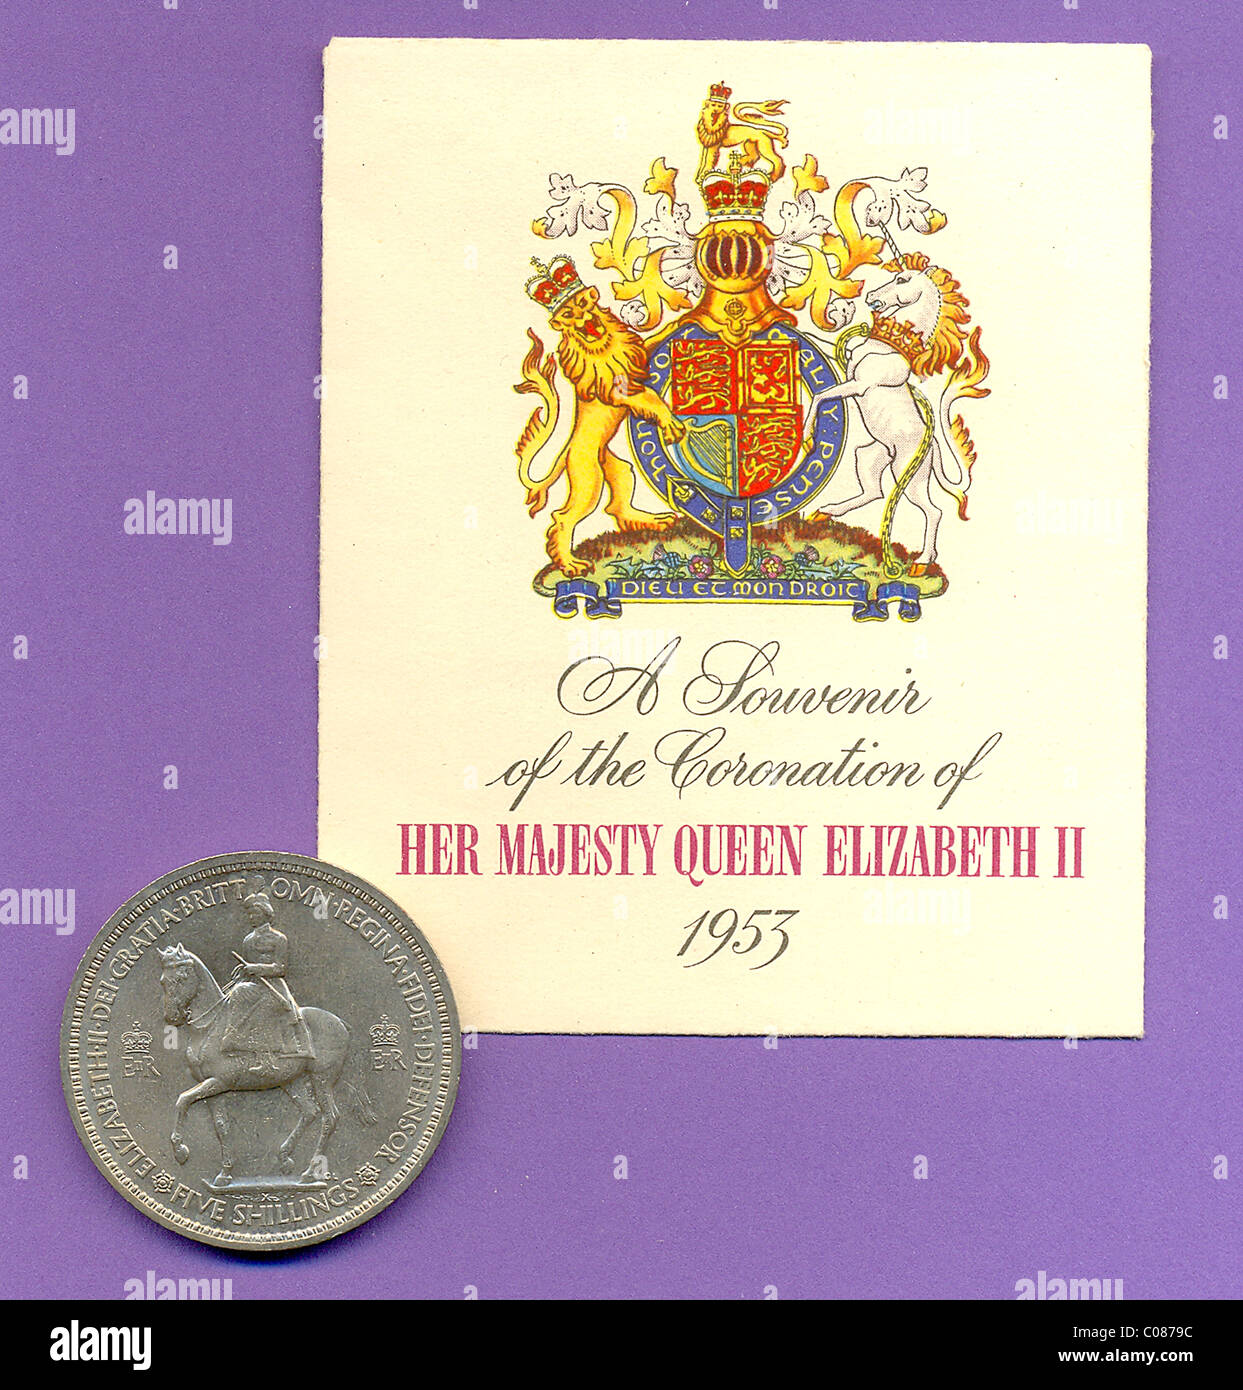 1953 Coronation crown coin and accompanying gift envelope - Stock Image